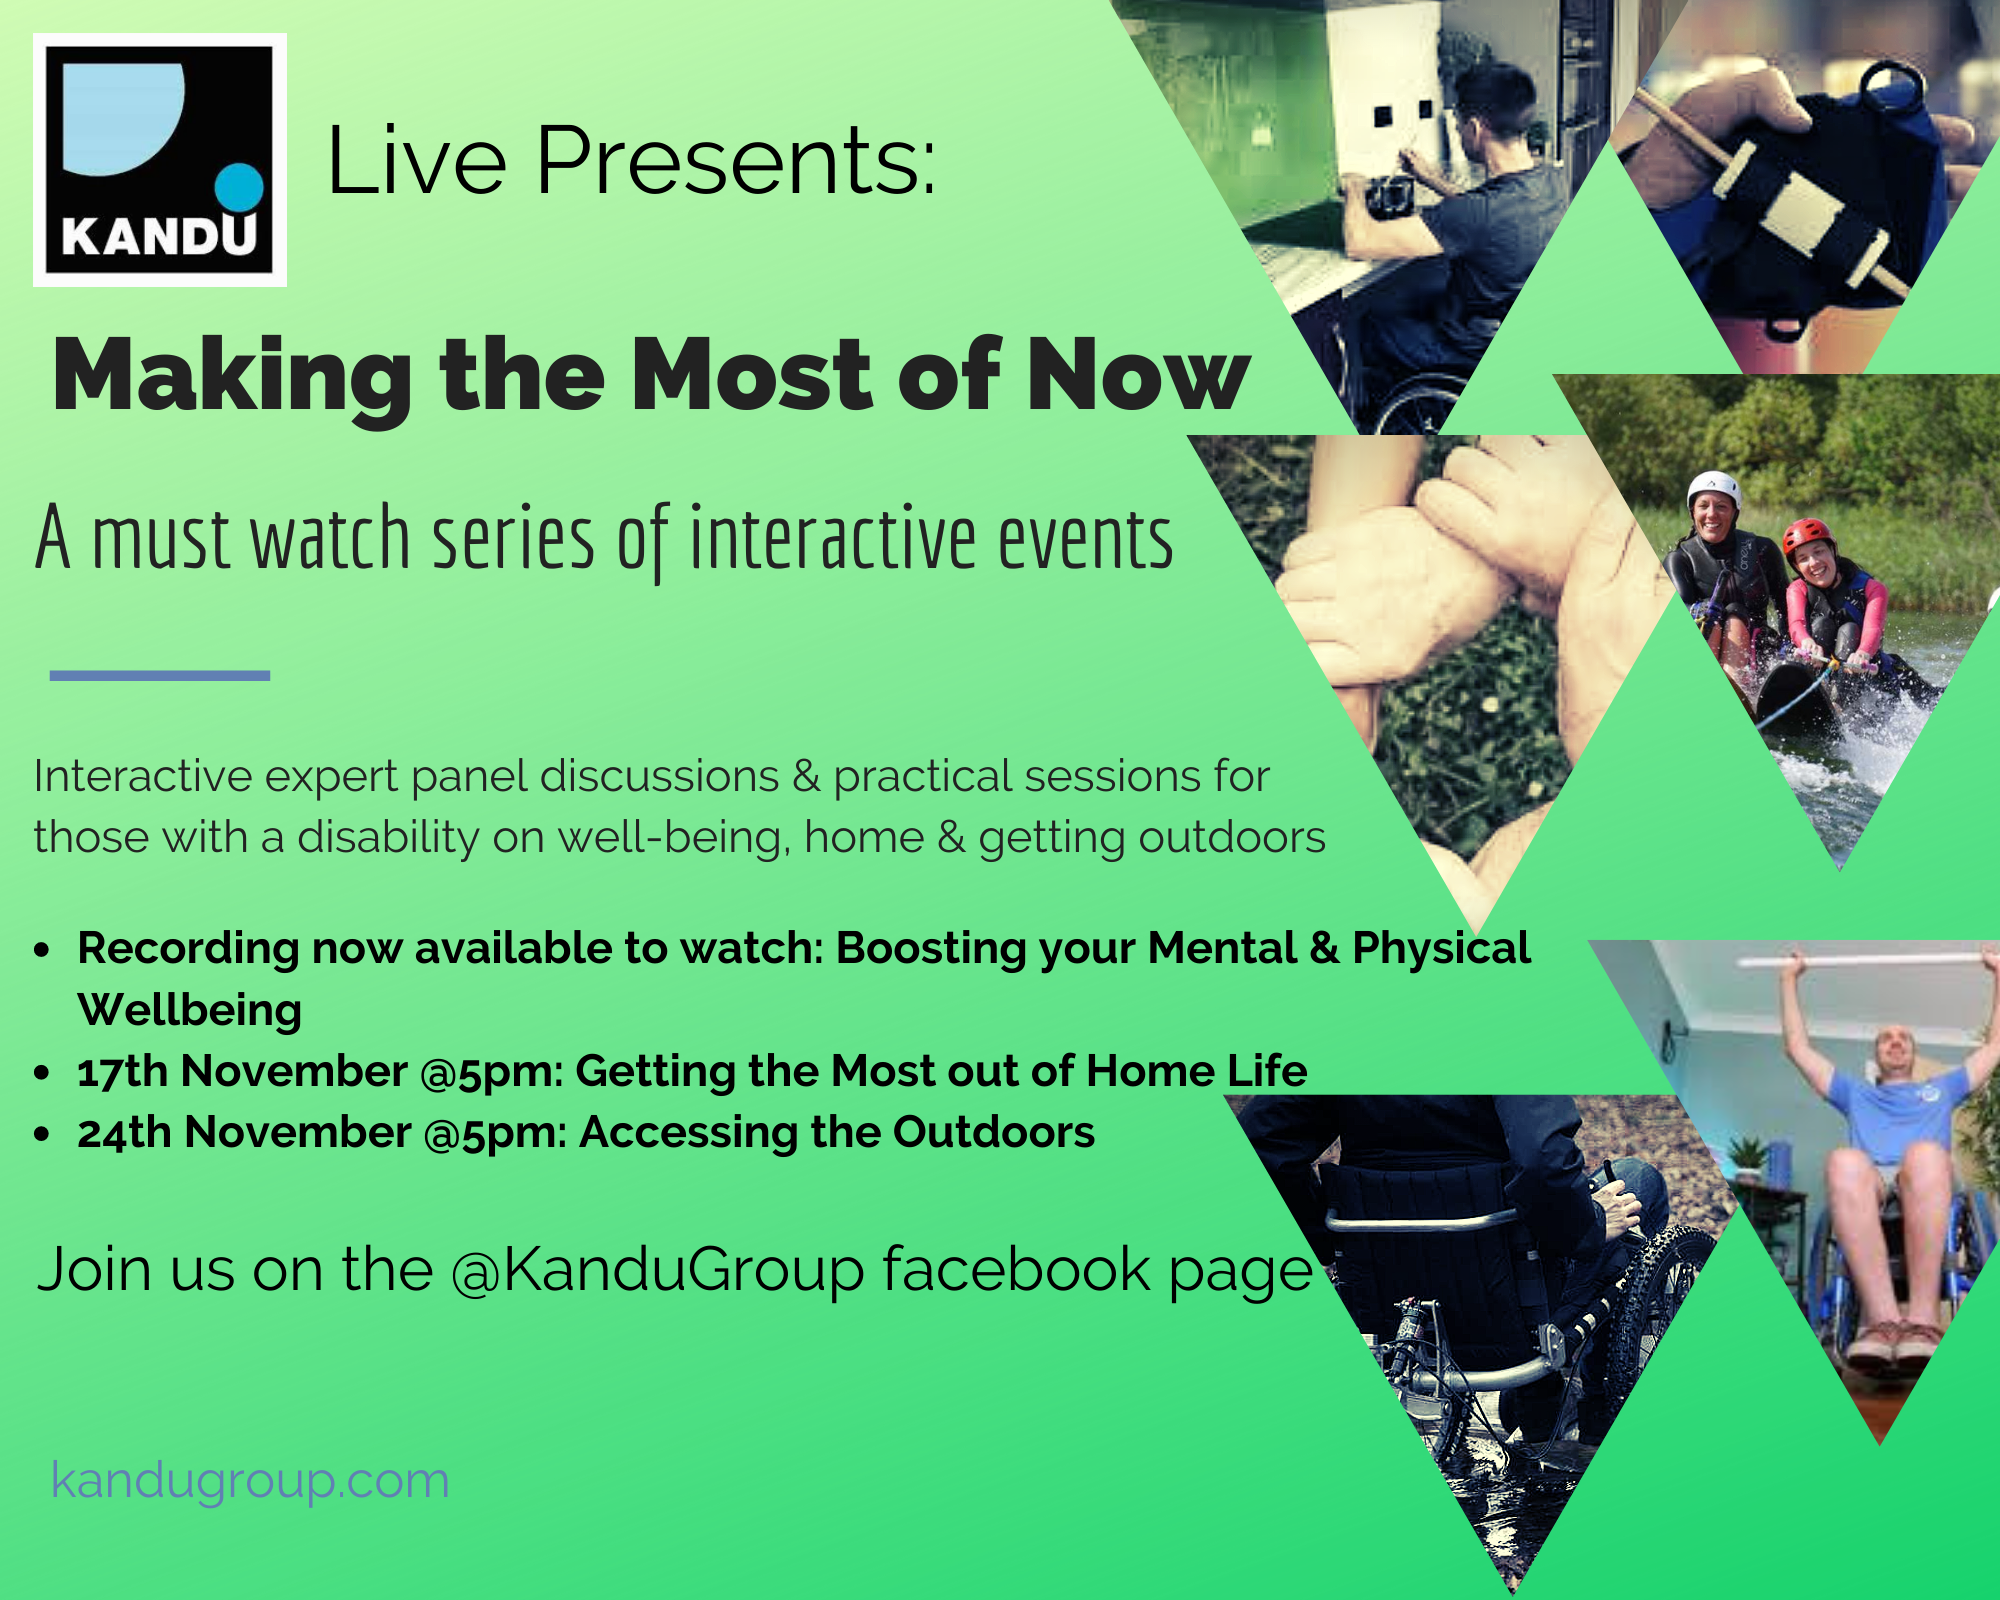 Kandu Group Presents... Making the most of Now, watch the recordings of the live events